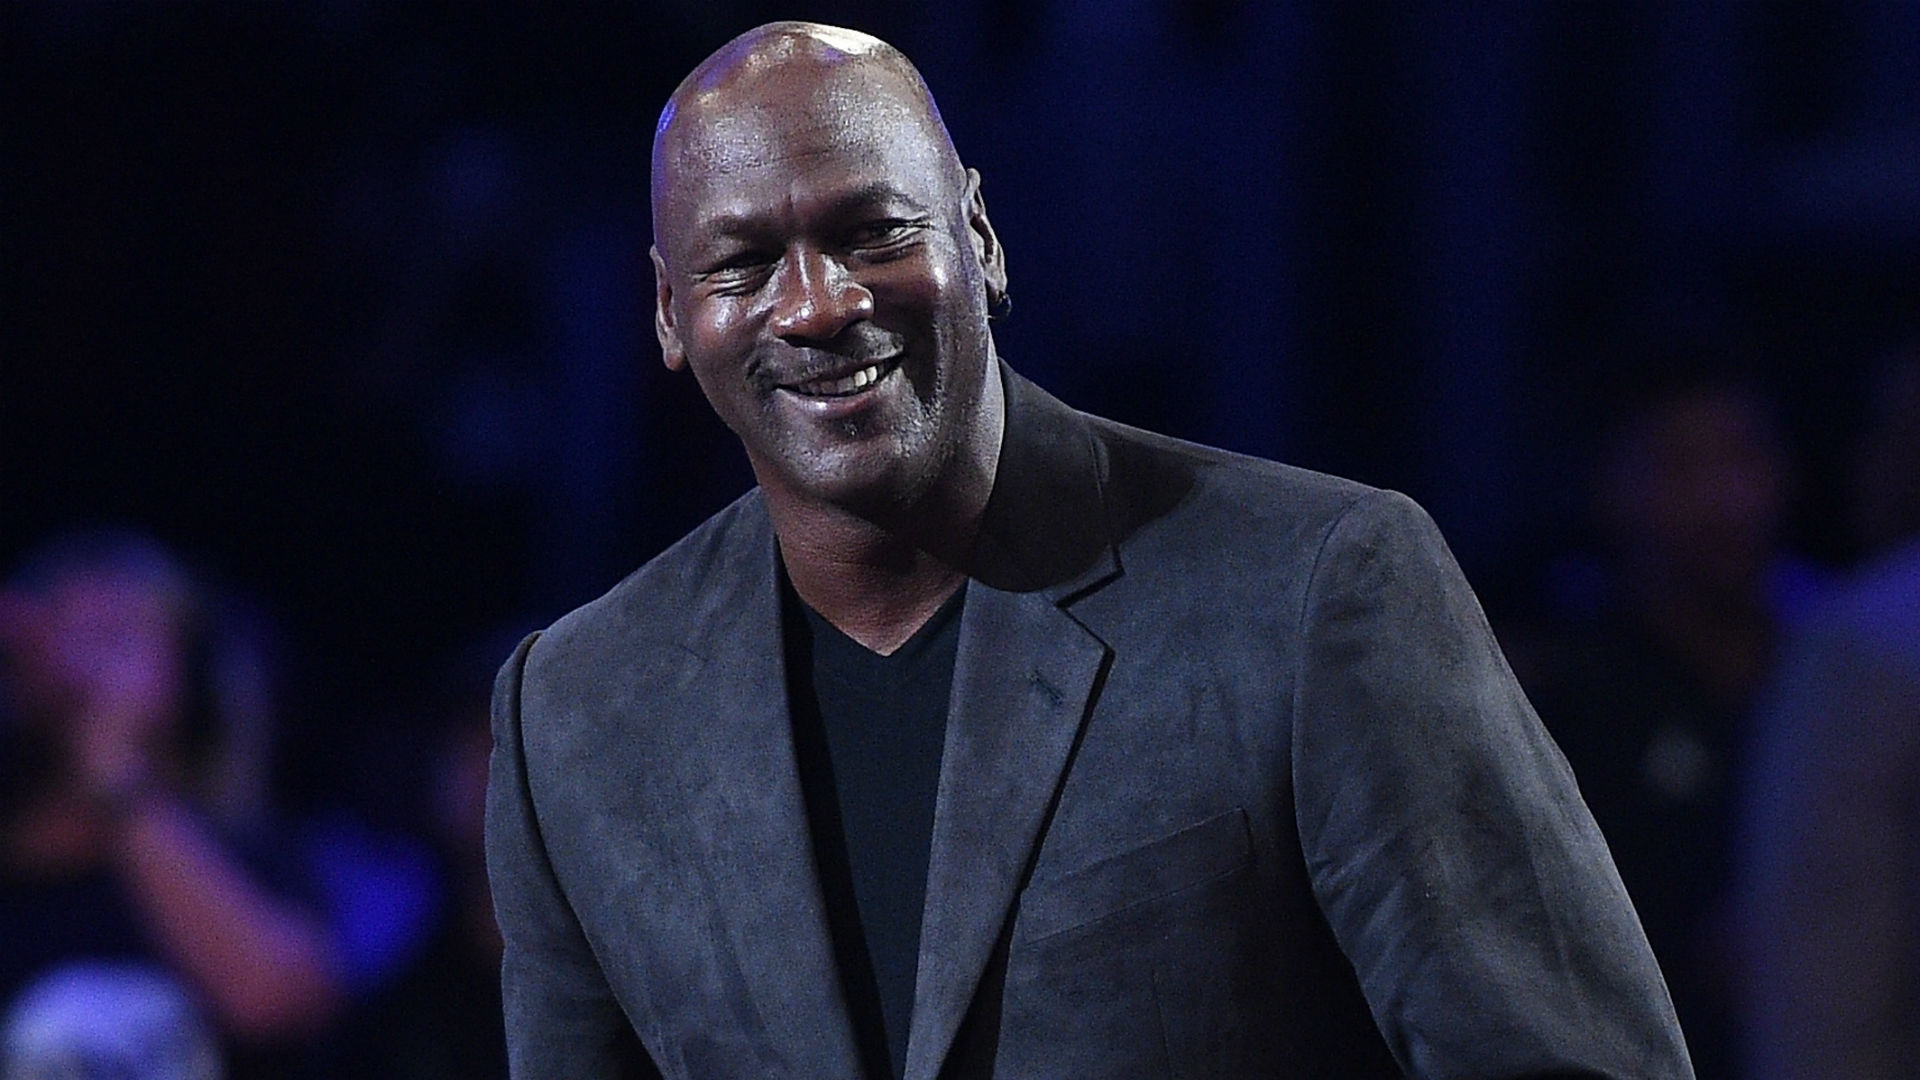 All-Star game marks latest milestone for Michael Jordan